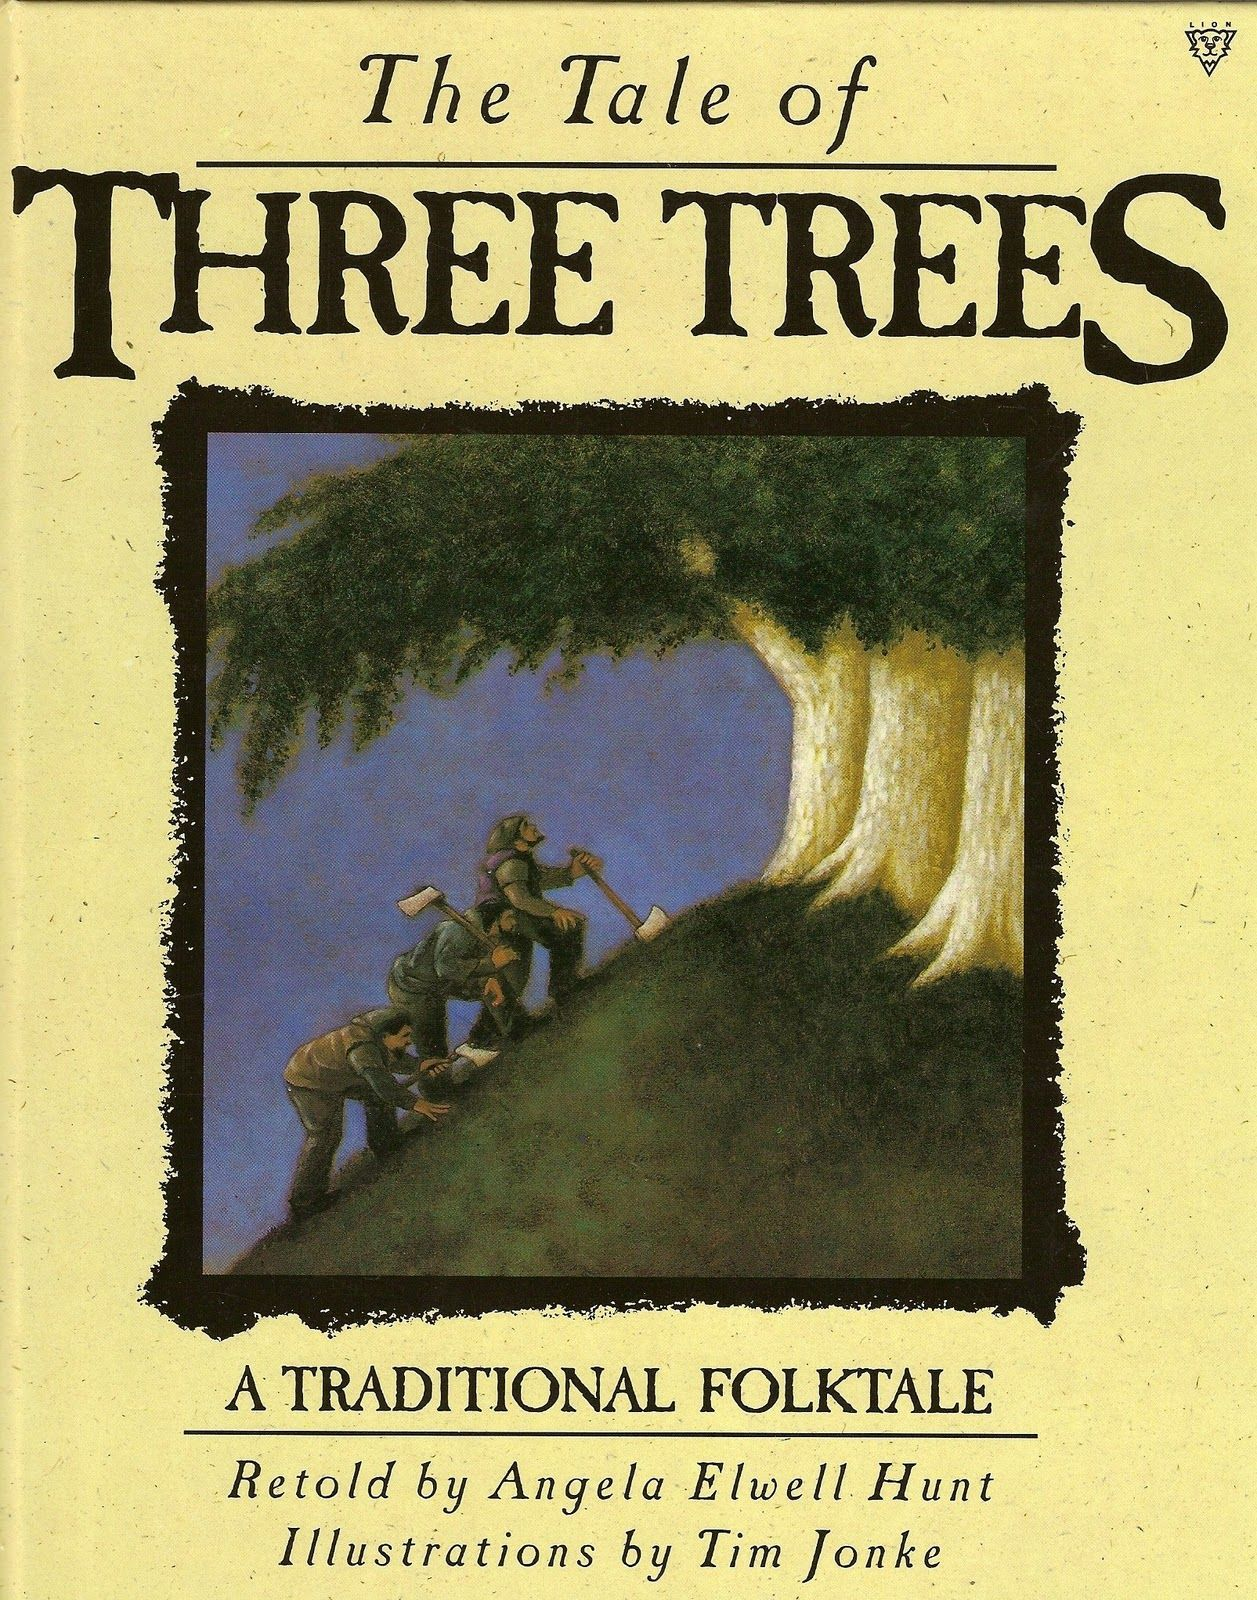 The Three Trees  retold by Angela Elwell Hunt describes the dreams of three fir trees.